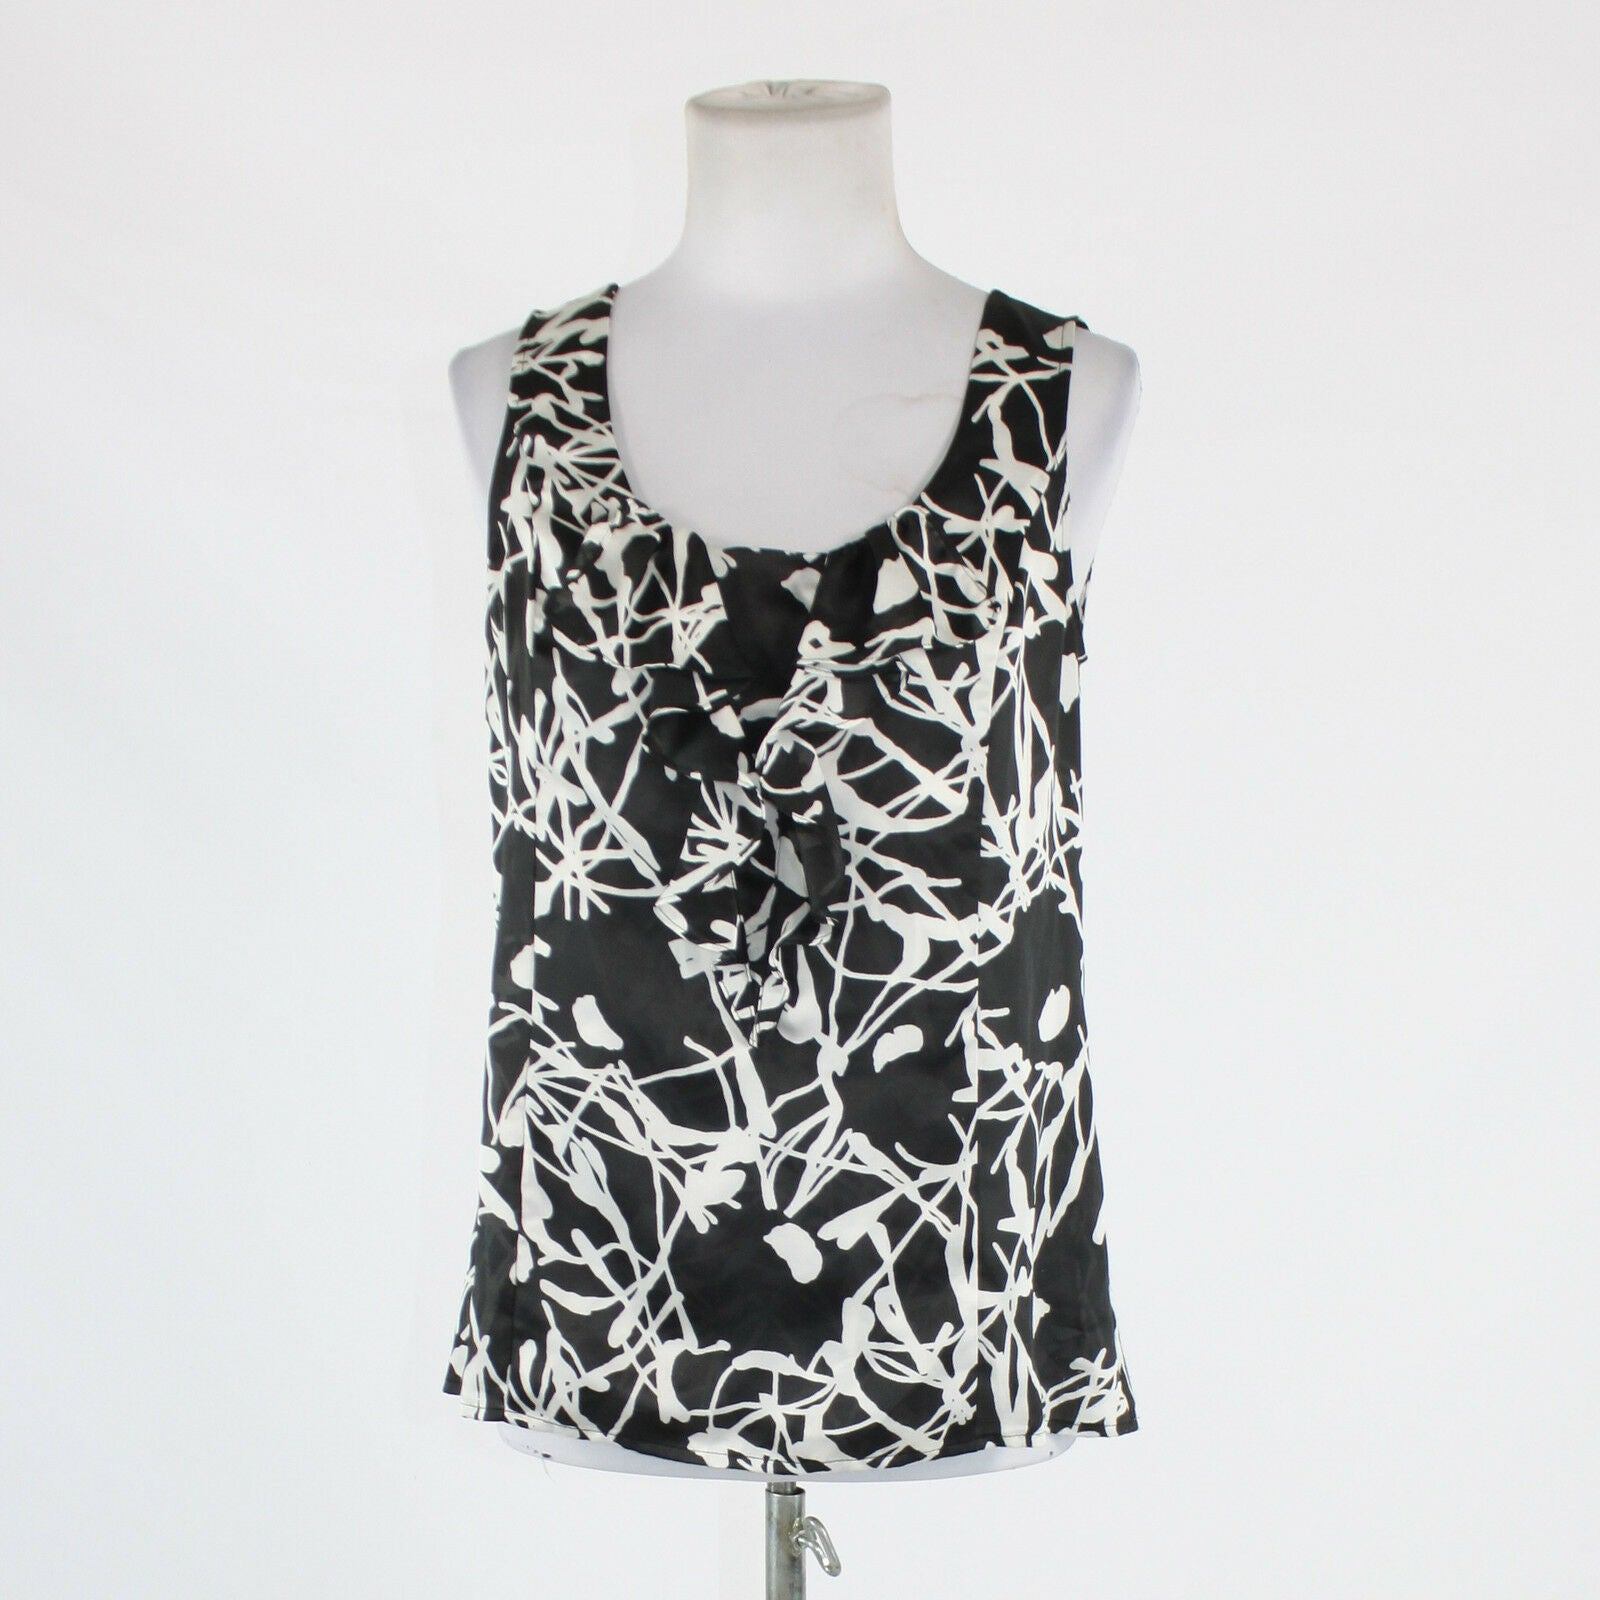 Black white floral ANN TAYLOR LOFT sleeveless scoop neck blouse PM